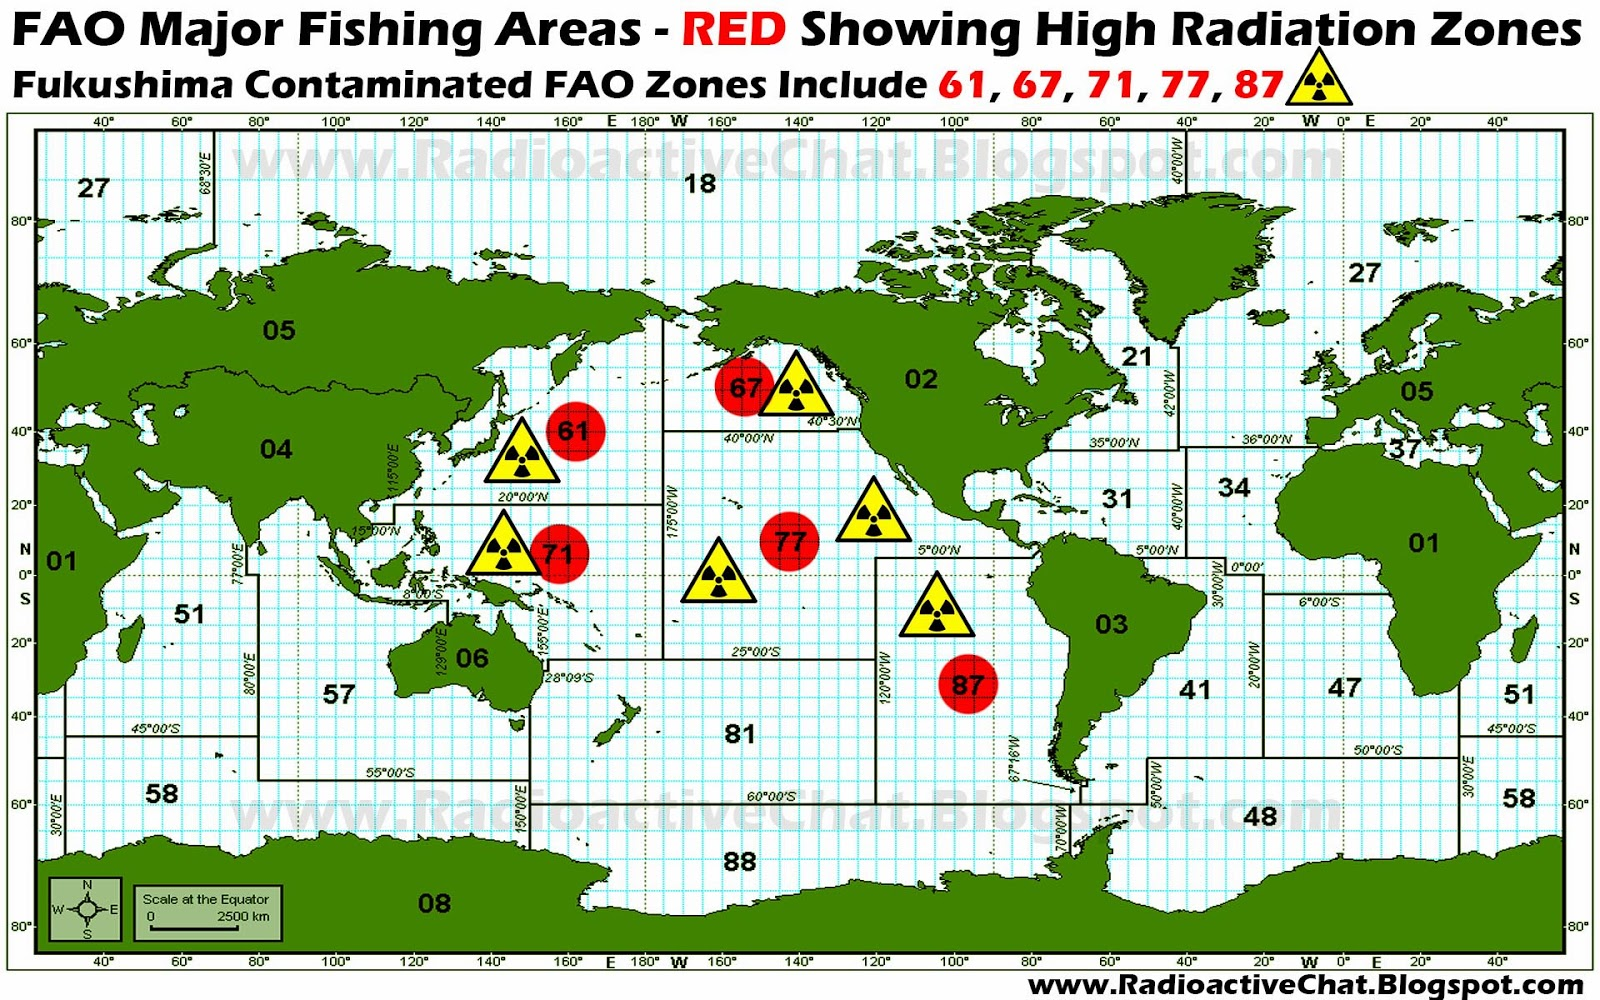 FAO Major Fishing Areas Showing Fukushima Fallout Contaminated FAO Zones 61,67,71,77,87 Radioactive Fish Food ☢